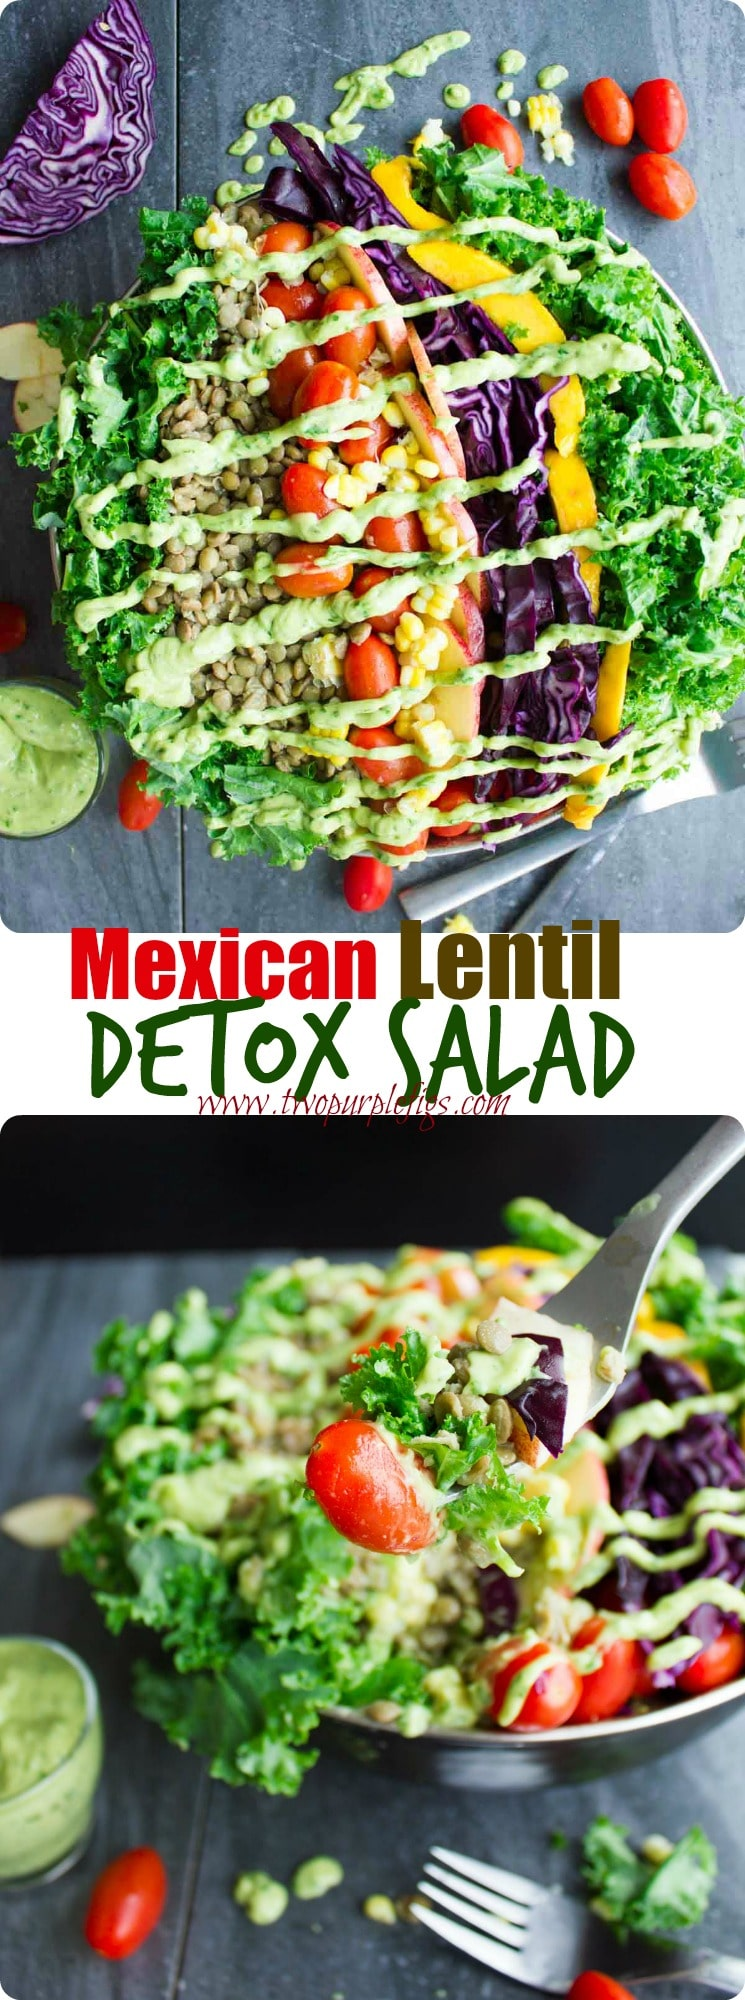 This Mexican-Style Detox Salad with mangoes, soybeans, cabbage, kale, corn, and apple slices is just what the doctor ordered! Serve this easy Mexico-inspired salad with my Green Goddess Guacamole Dressing for a healthy, vegan or paleo meal. #paleorecipes, #saladrecipes, #healthyrecipes, #cleaneatingrecipes, #veganrecipes